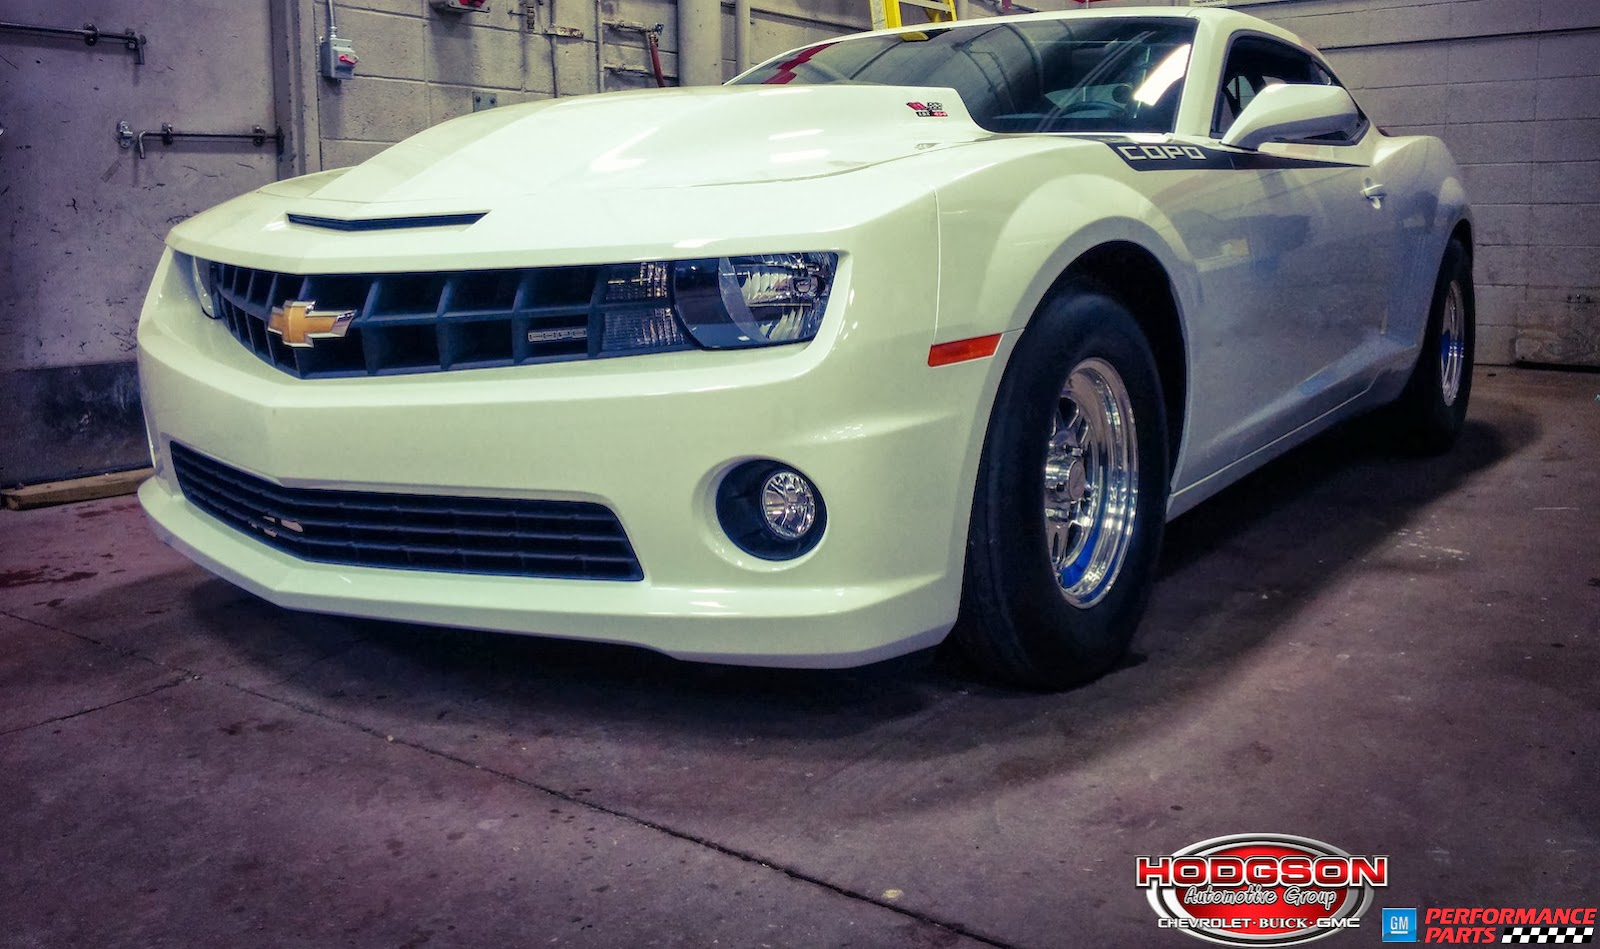 ron hodgson chevrolet gmc buick 2013 chevrolet camaro crc copo. Cars Review. Best American Auto & Cars Review